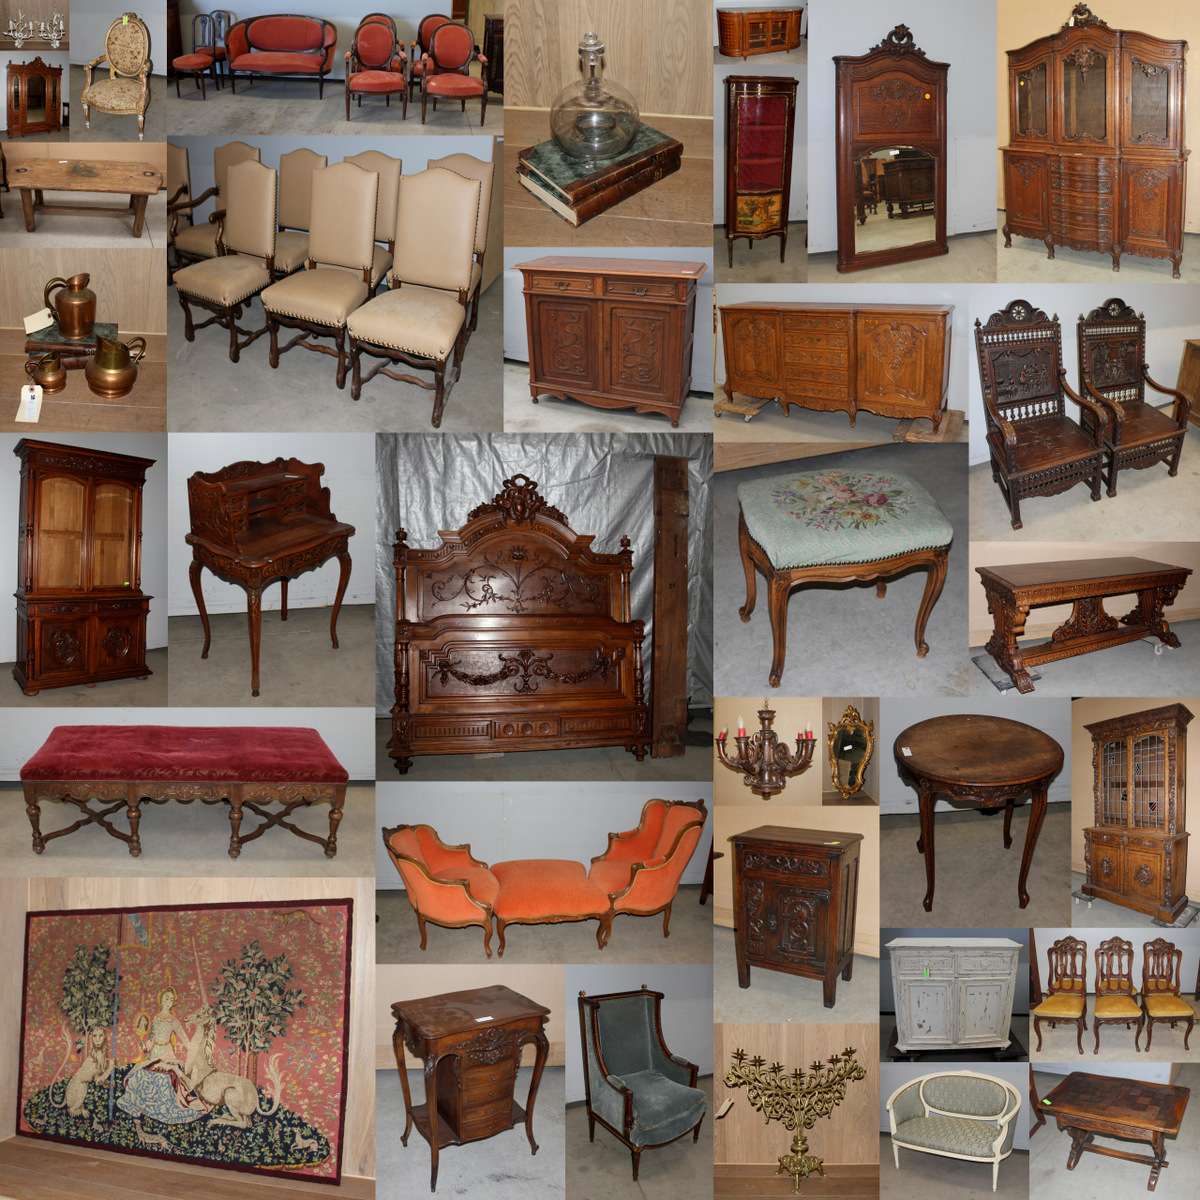 Antique Furniture Dallas - Antique Furniture Dallas - Image Antique And Candle Victimassist.Org